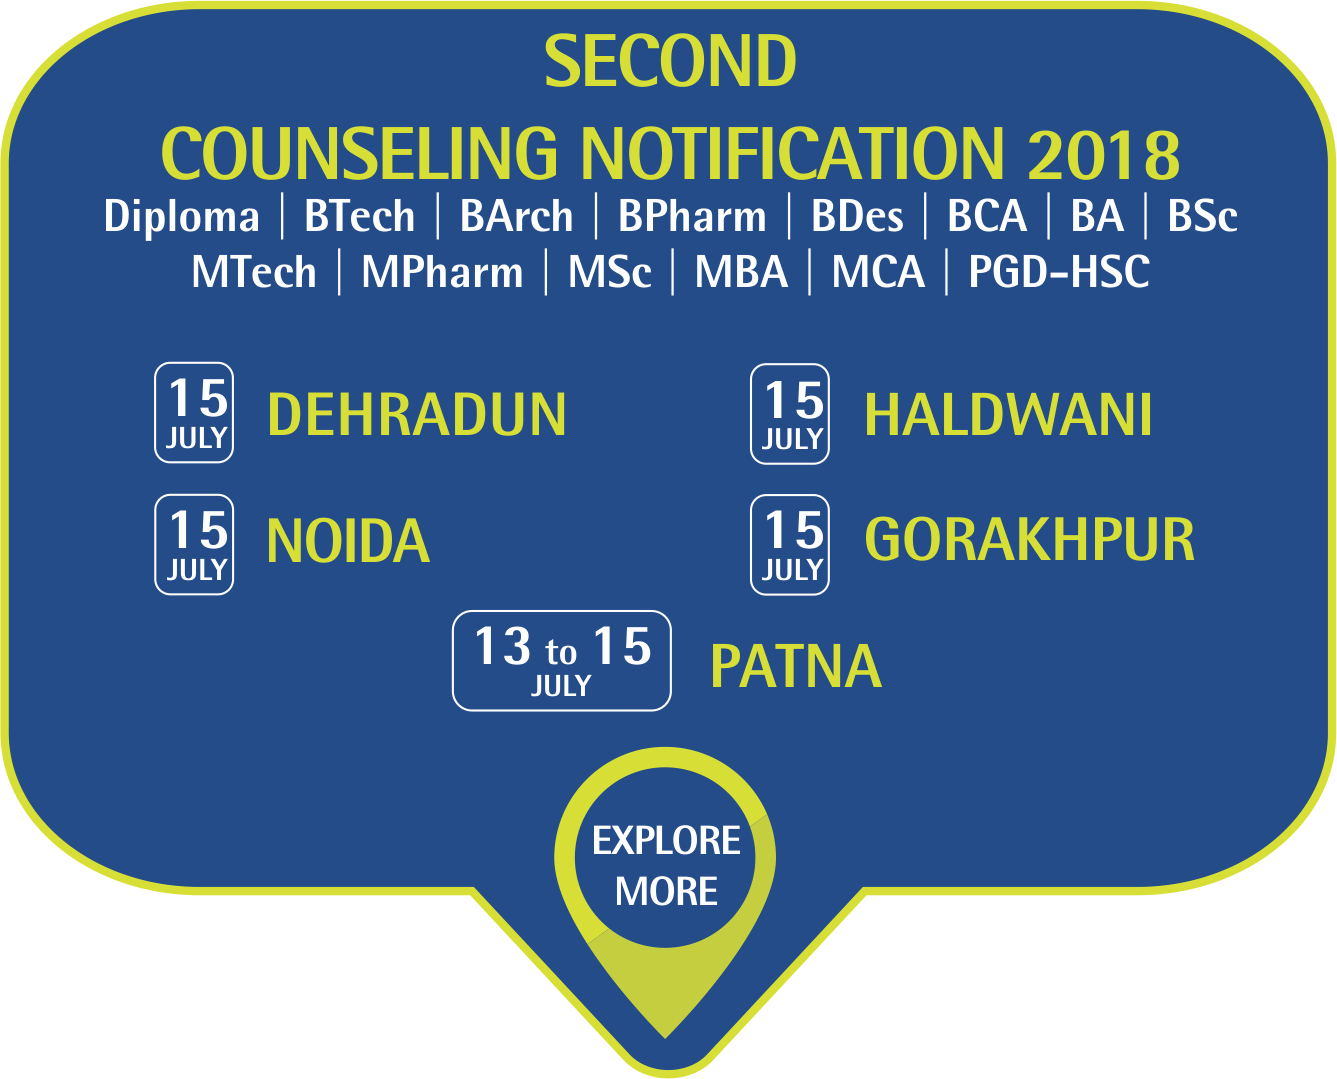 Second Counseling Notification 2018